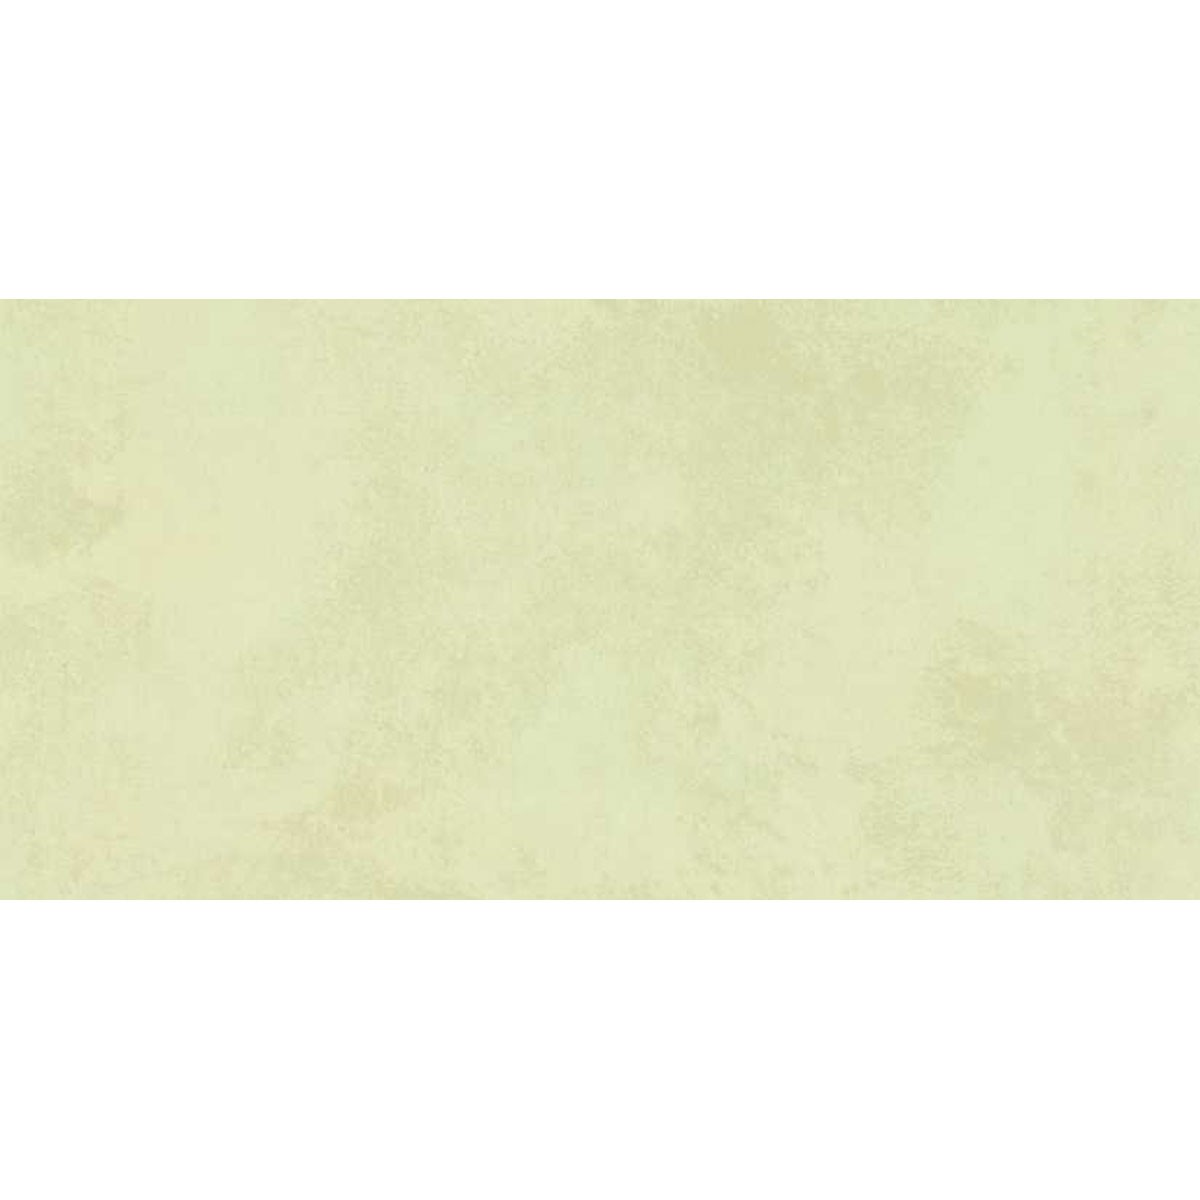 24 x 12 In. Beige Porcelain Floor Tile - 8 Pcs/Case (15.50 sq.ft/Case) (UR60B)